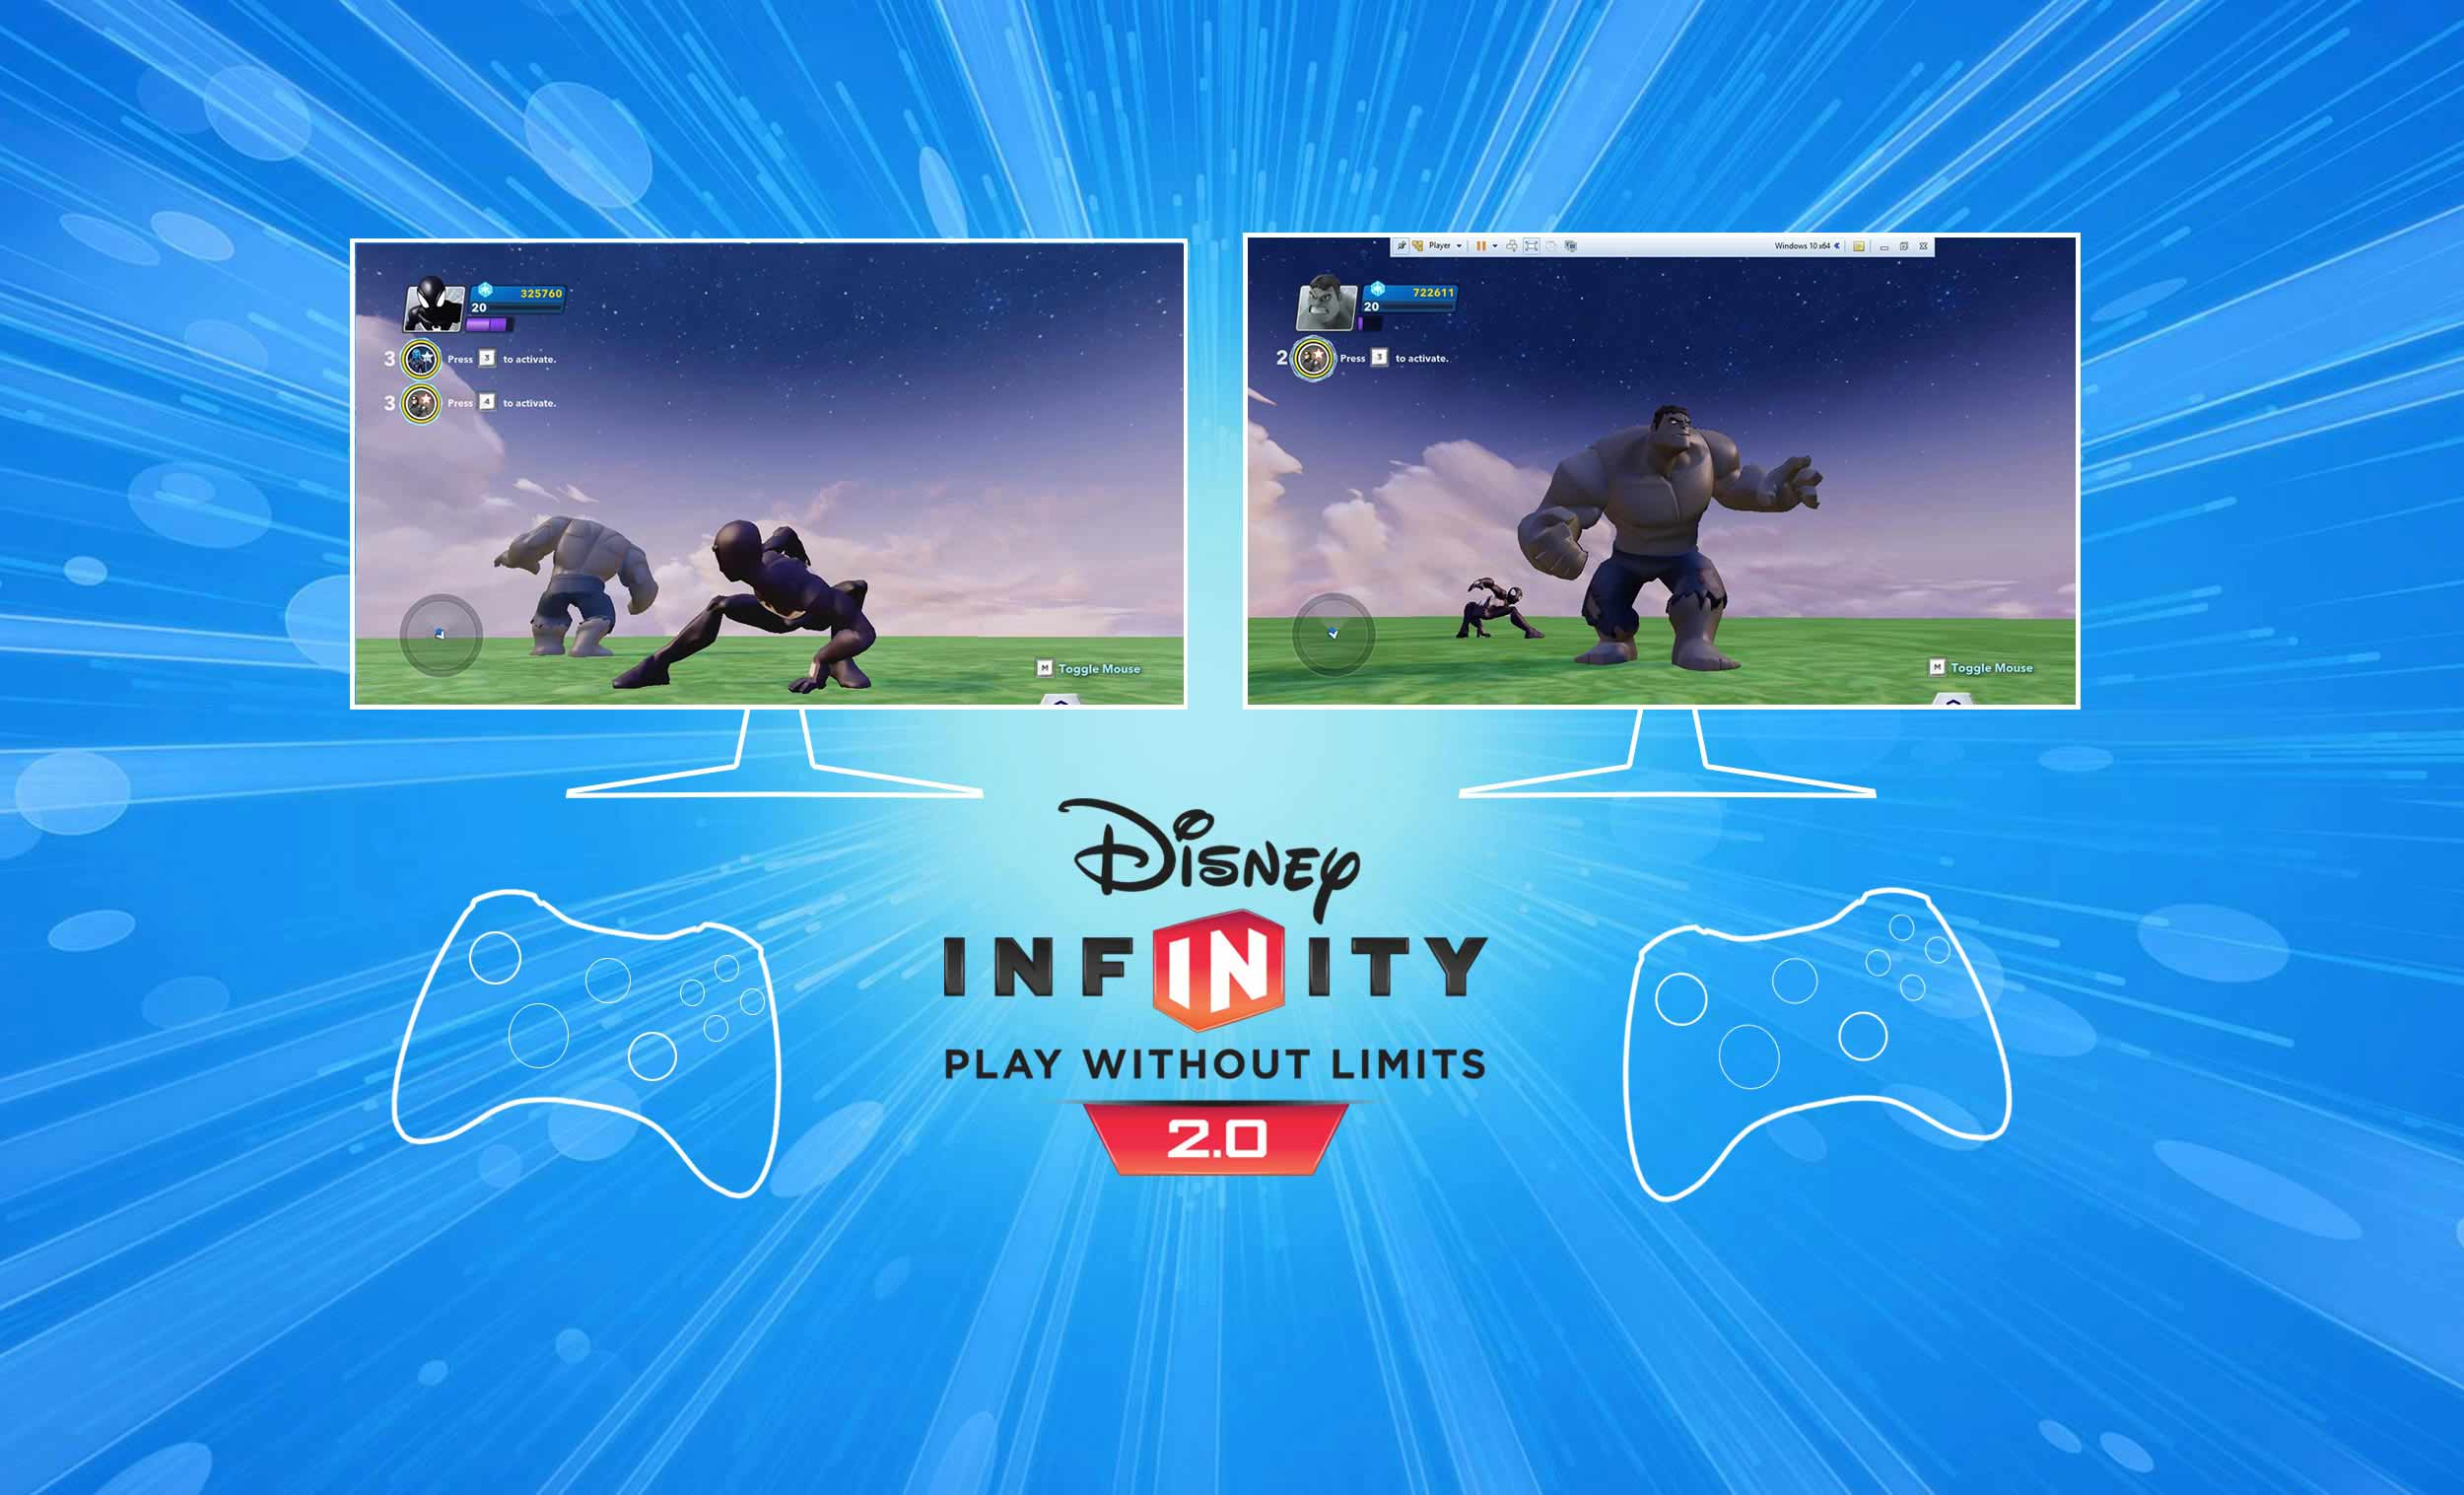 """disney infinity 2.0 multiplayer using one pc<br><div class=""""post"""